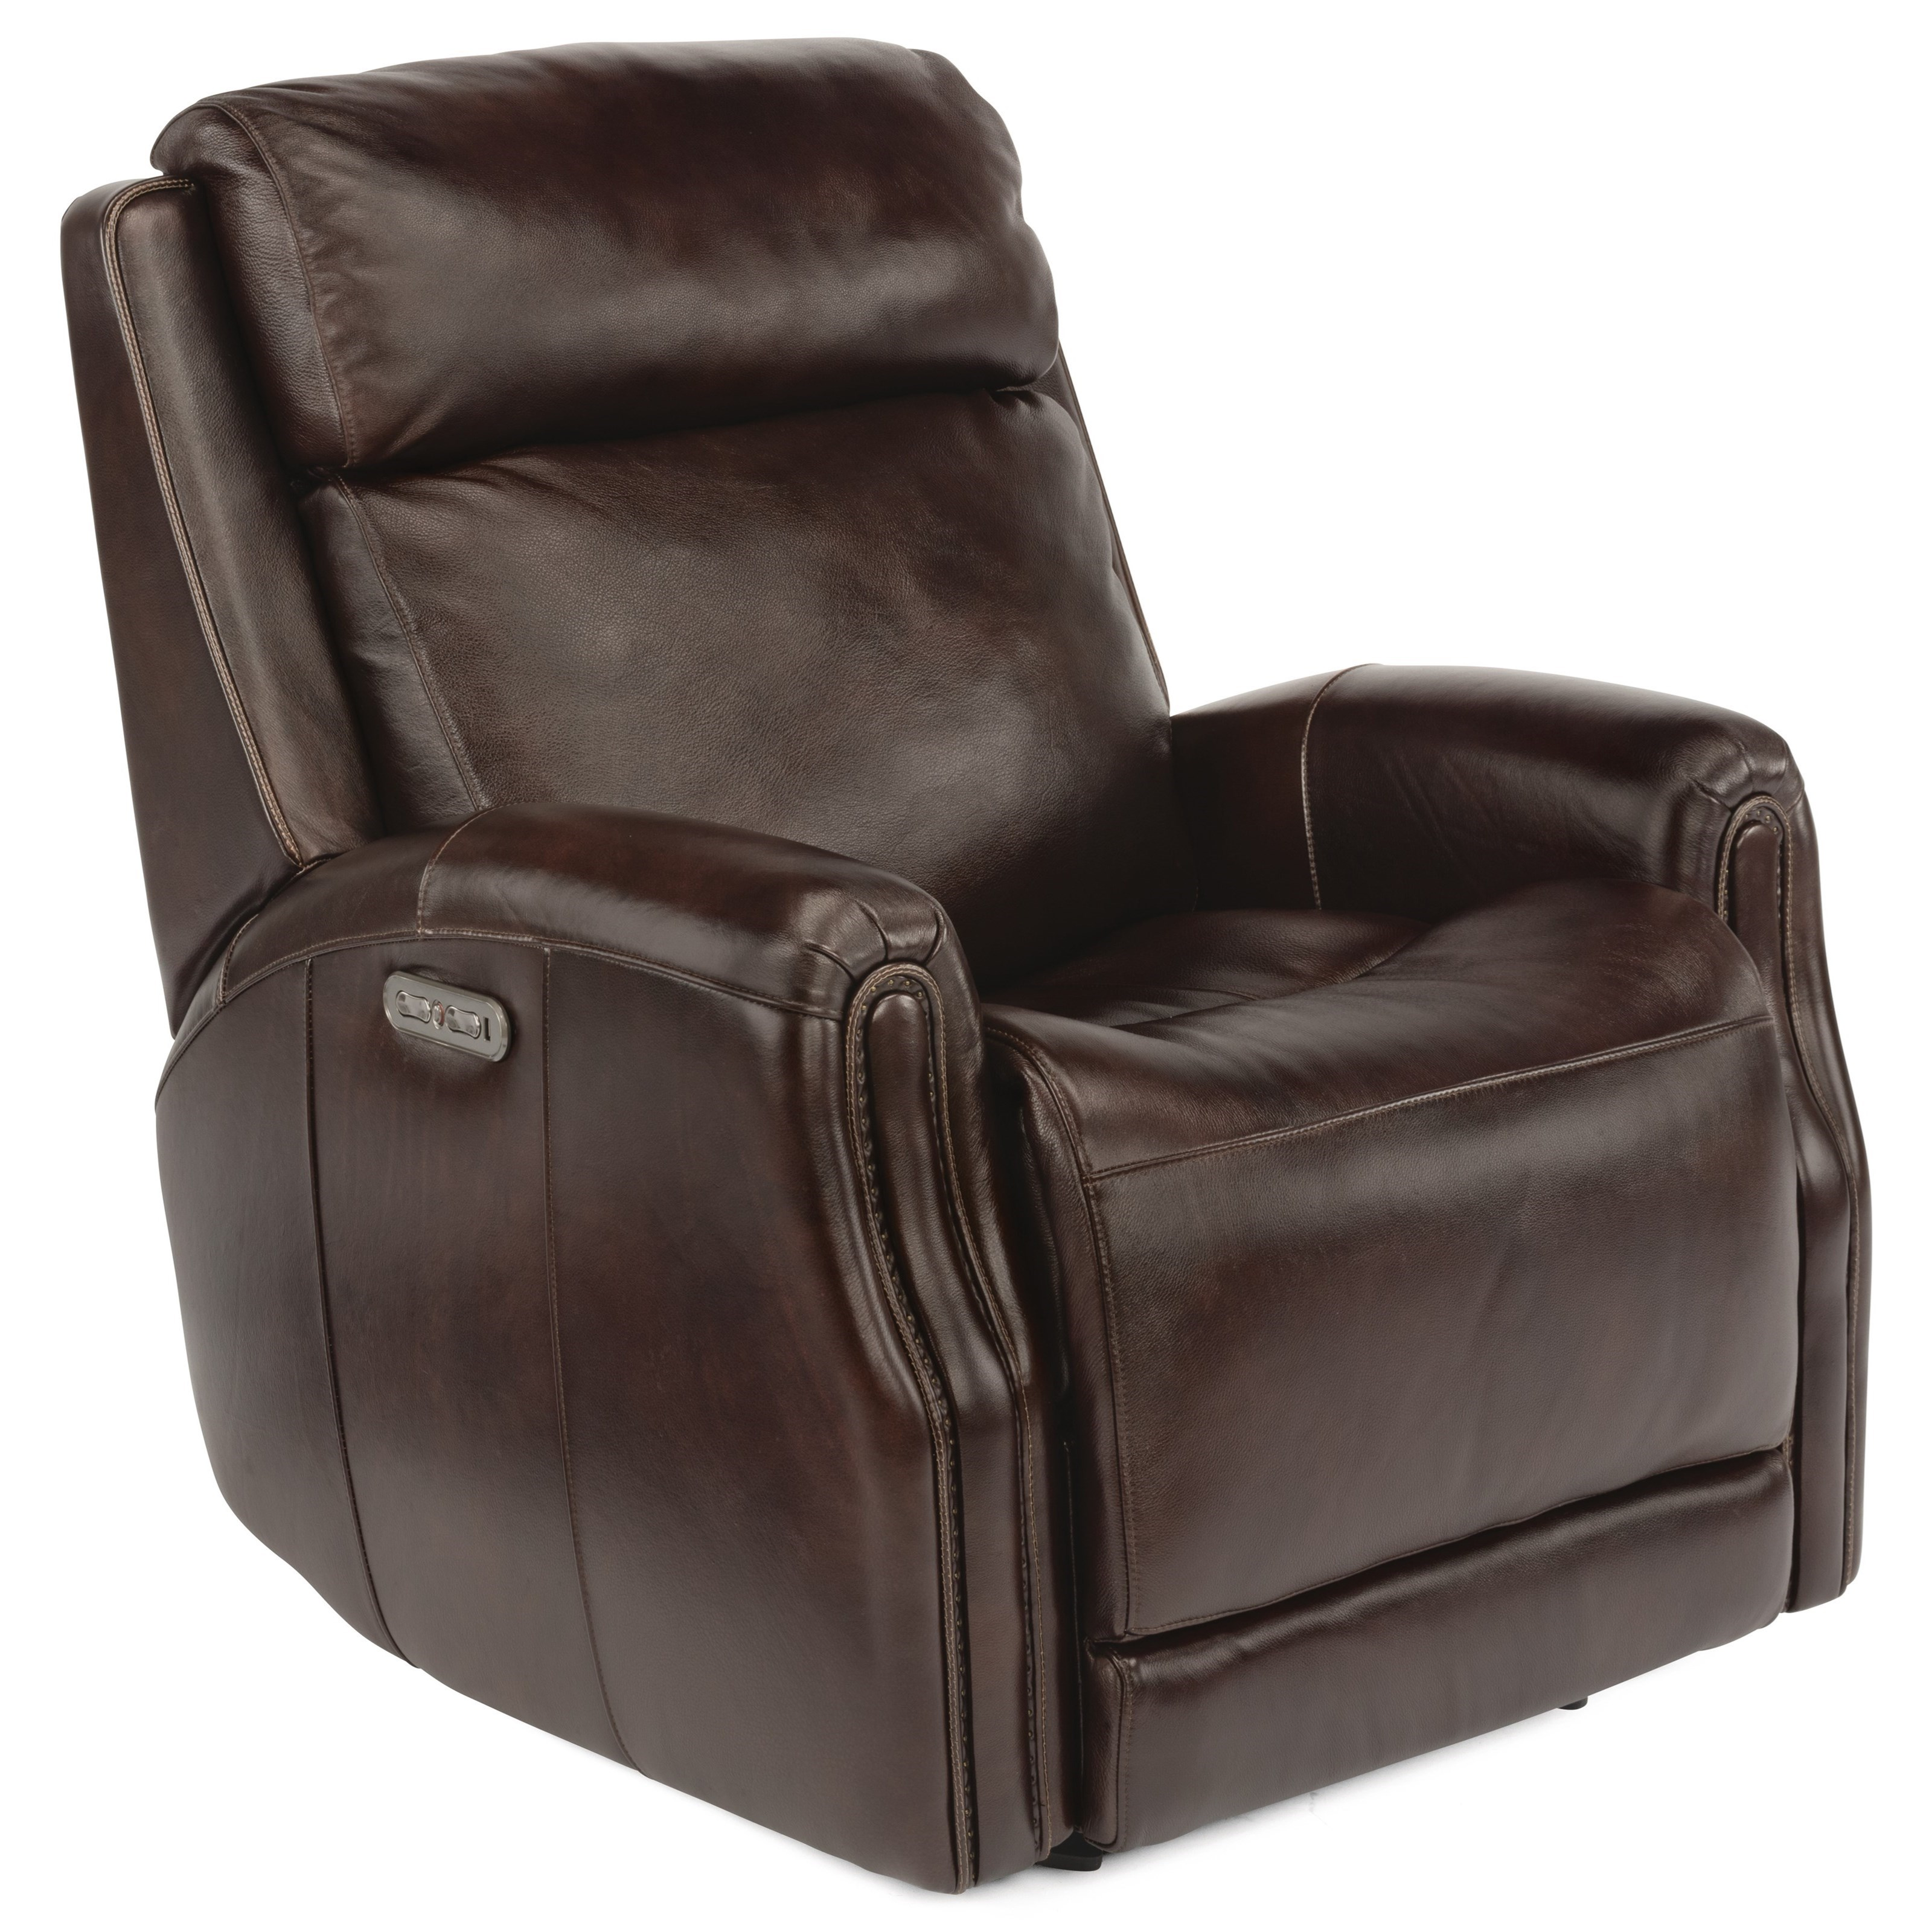 Latitudes - Stanley Power Gliding Leather Recliner by Flexsteel at Williams & Kay